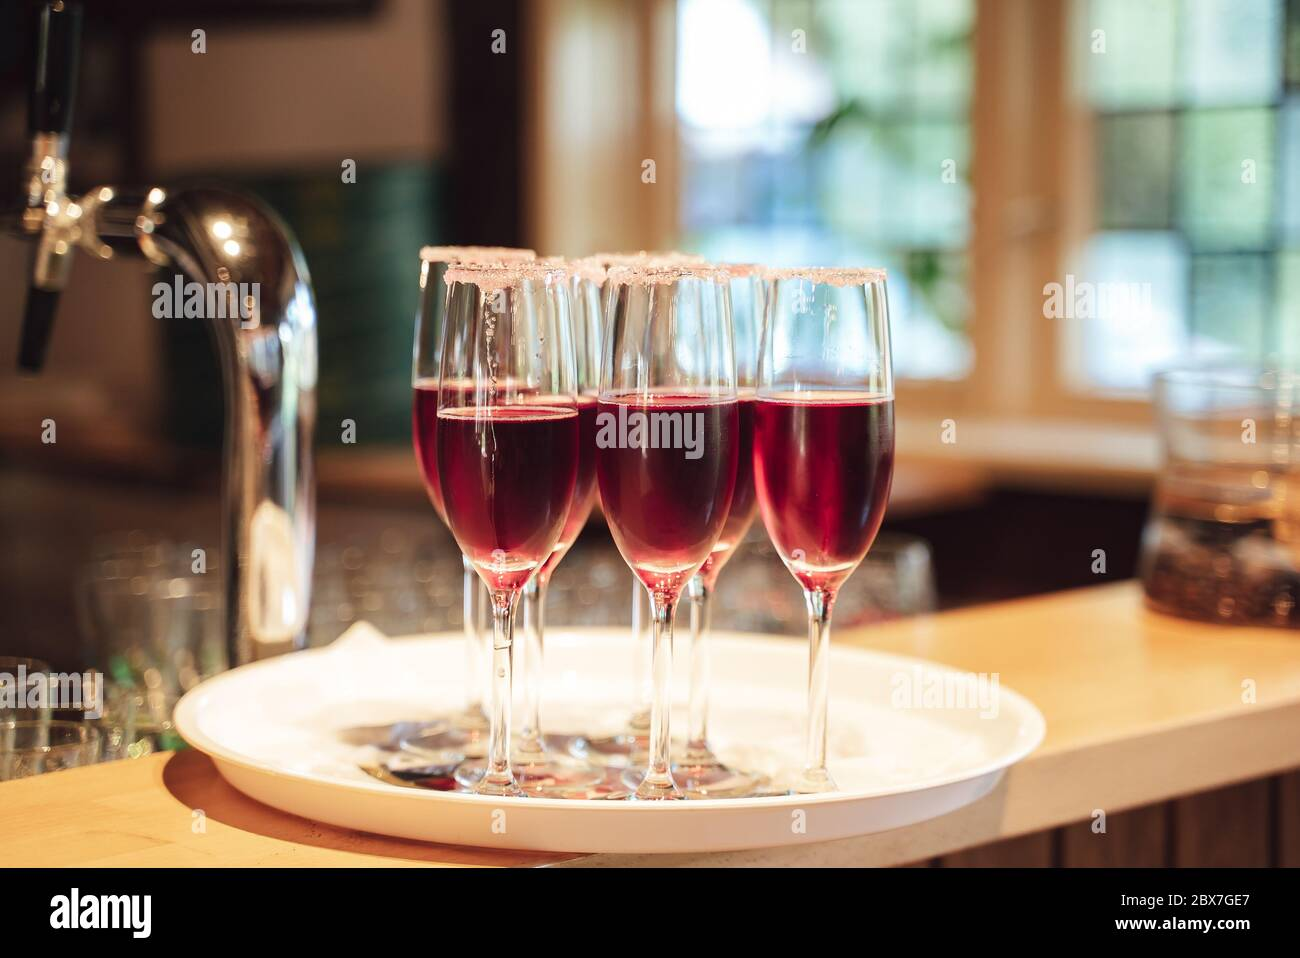 Several Glasses Of Red Drink Standing On Tray At Bar Celebration Birthday Party Wedding Concept Stock Photo Alamy